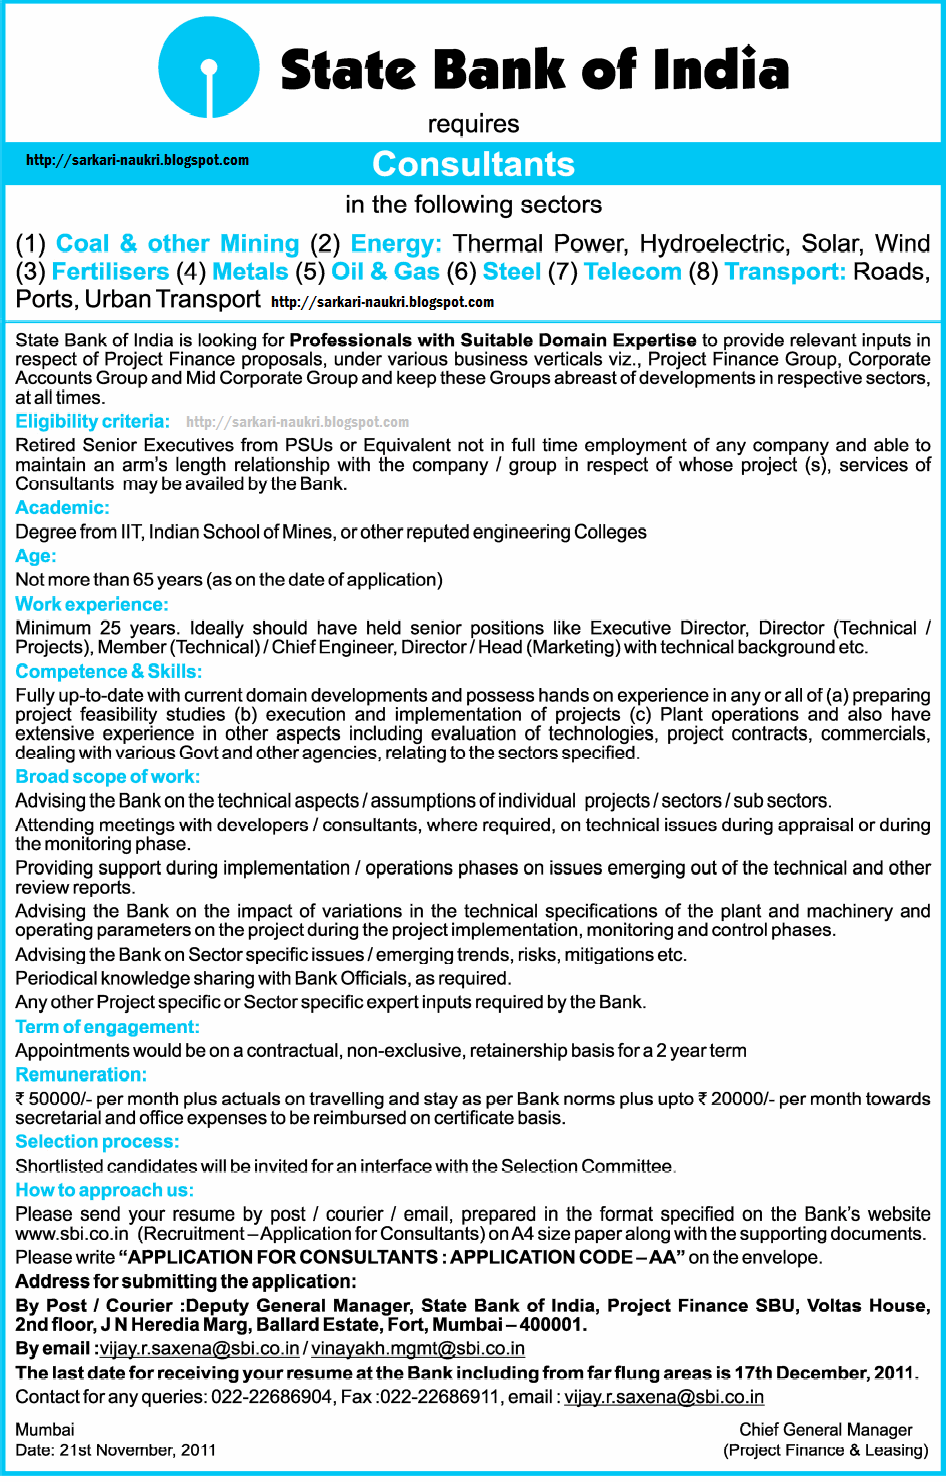 sbi-consultant-job Job Application Form Of State Bank India on